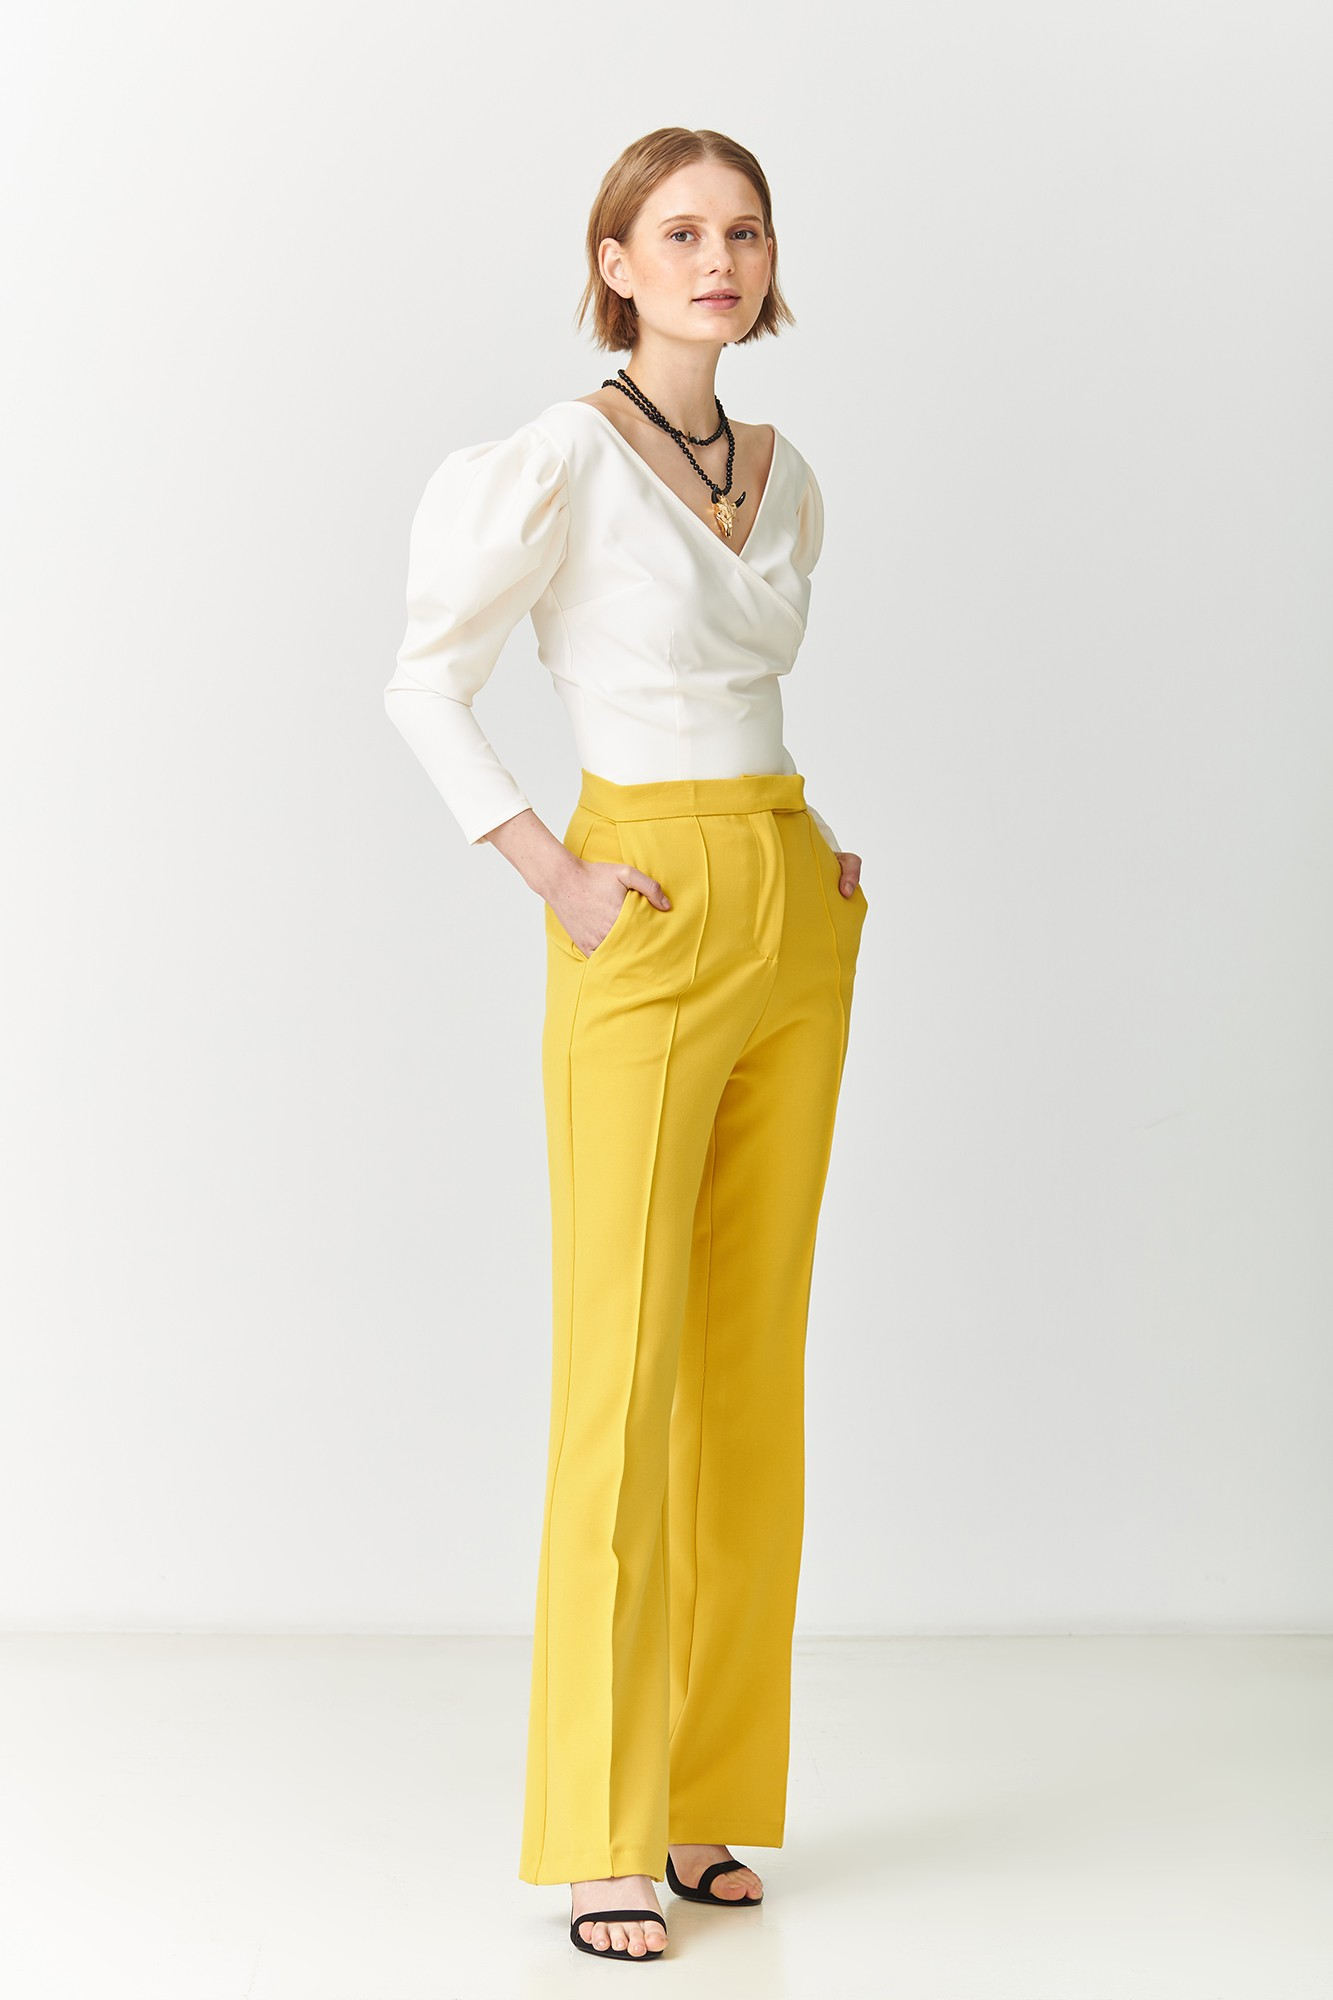 PANTALON MORGANA AMARILLO